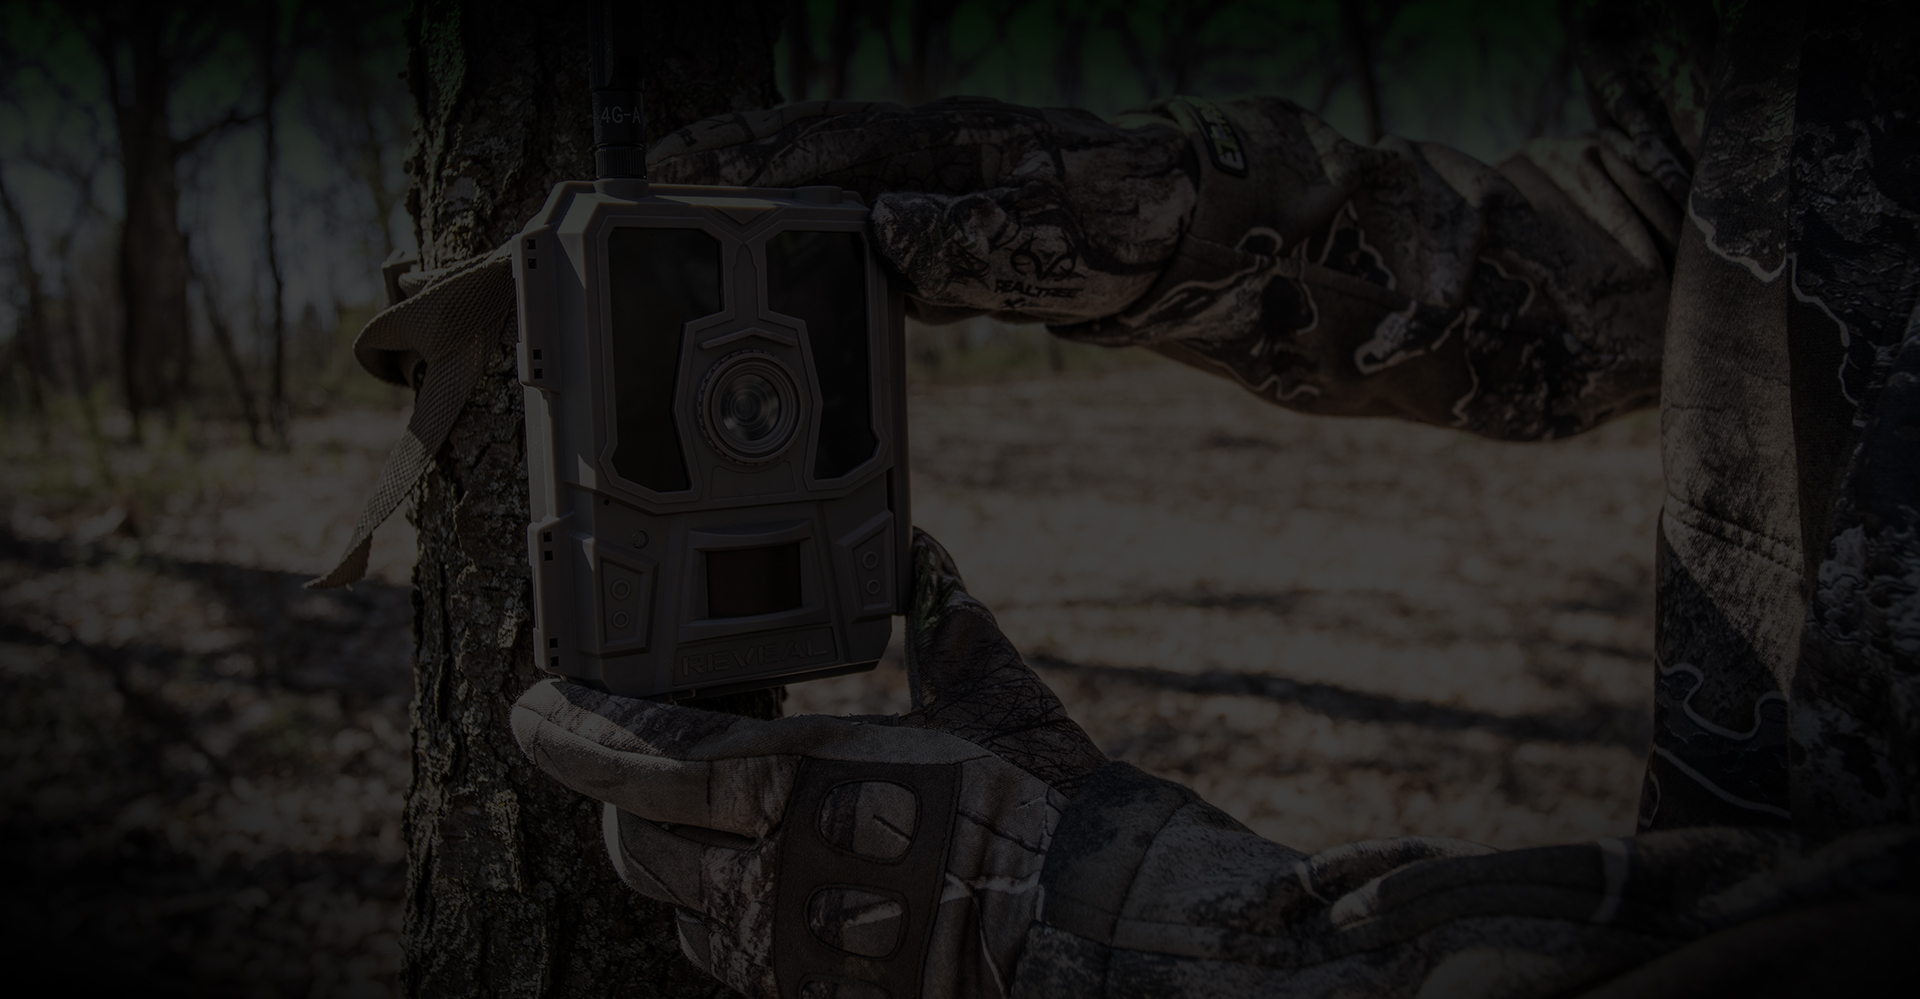 reveal by tactacam hunting cellular camera